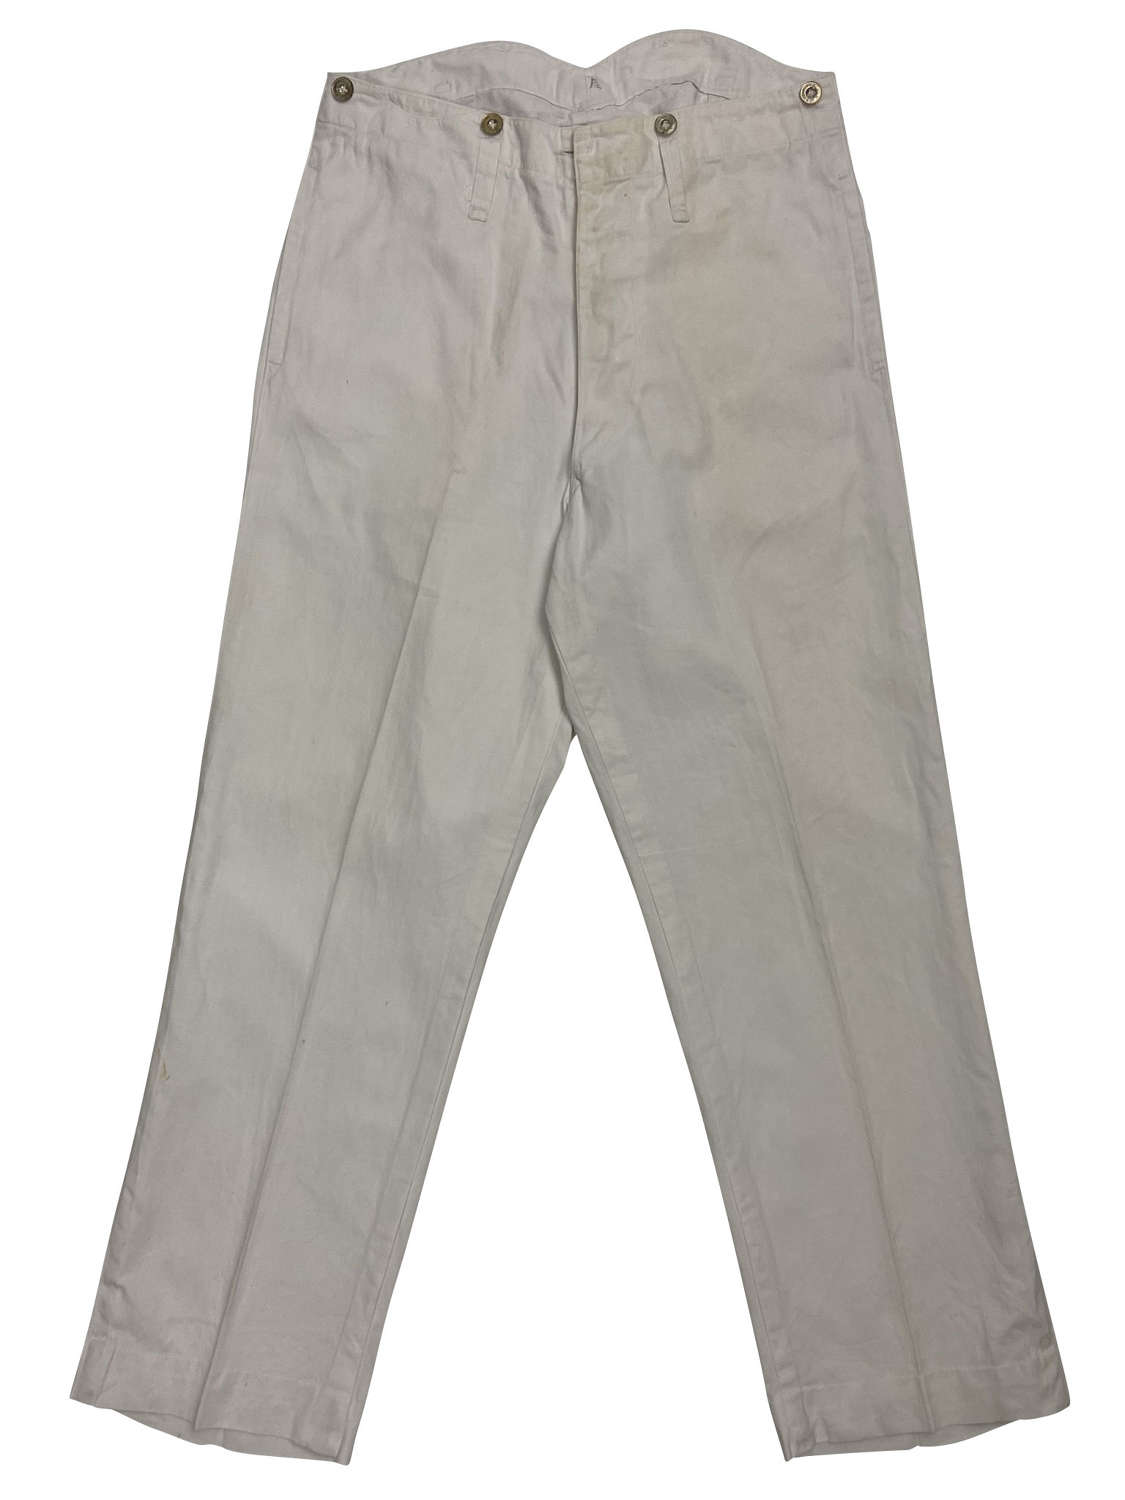 Original 1930s White Royal Navy Work Trousers